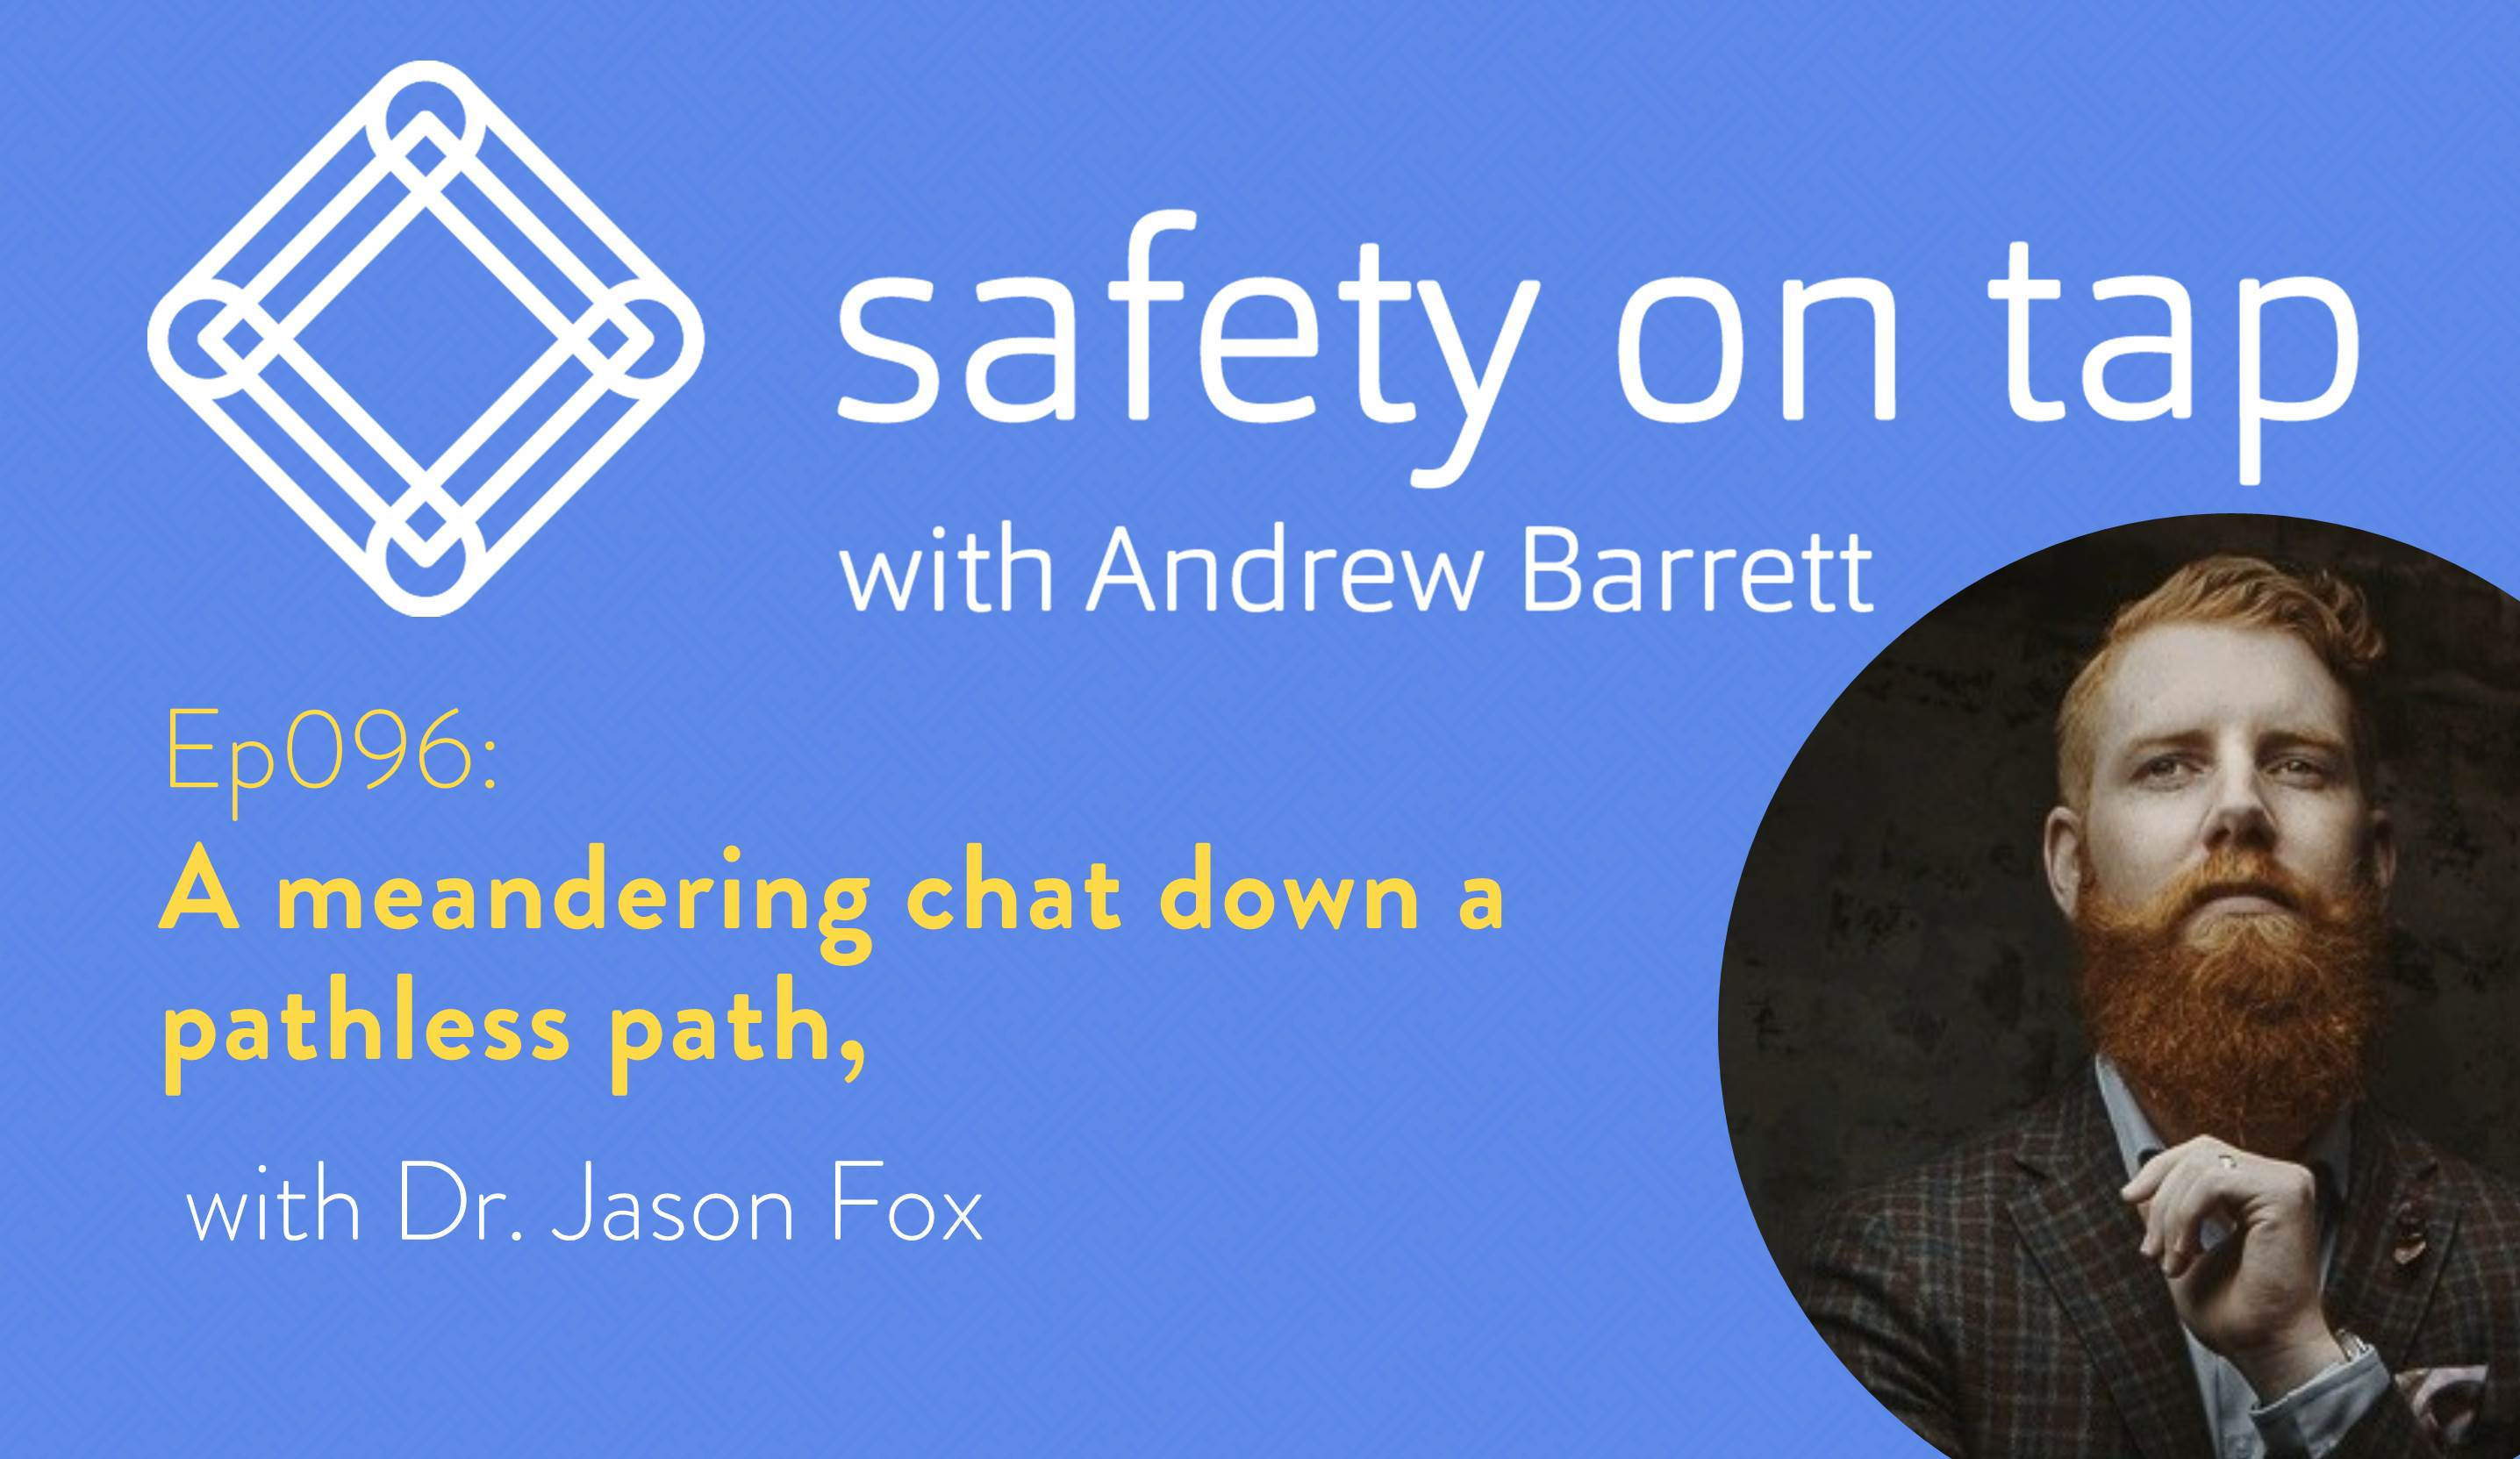 Ep096: A meandering chat down a pathless path, with Dr Jason Fox